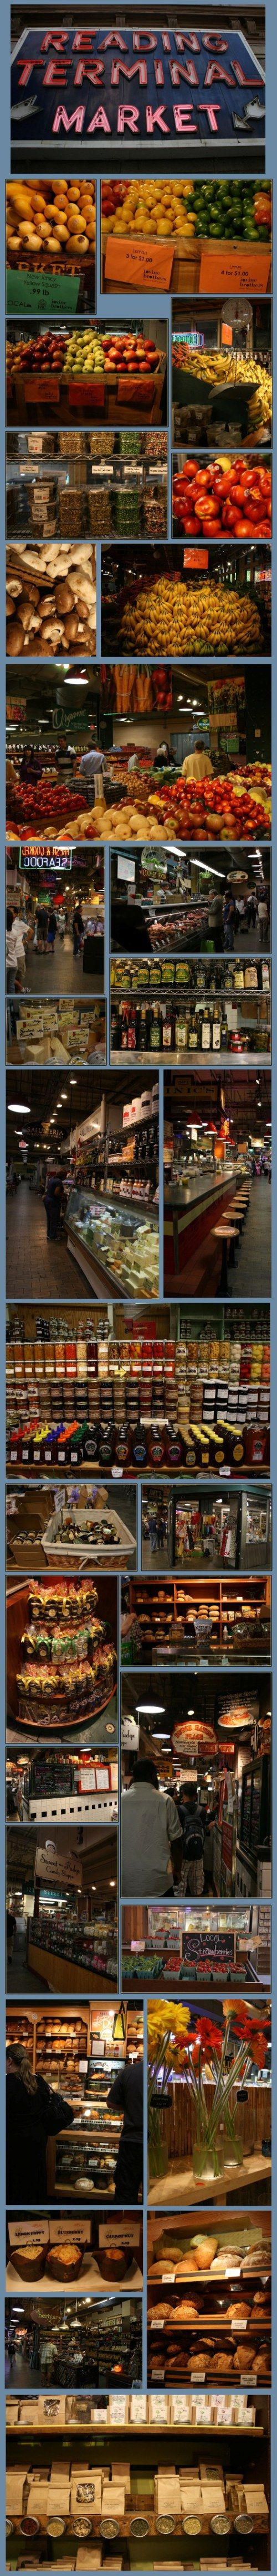 Reading Terminal Market, Philadelphia, PA.  A great place.....I could spend all day here!